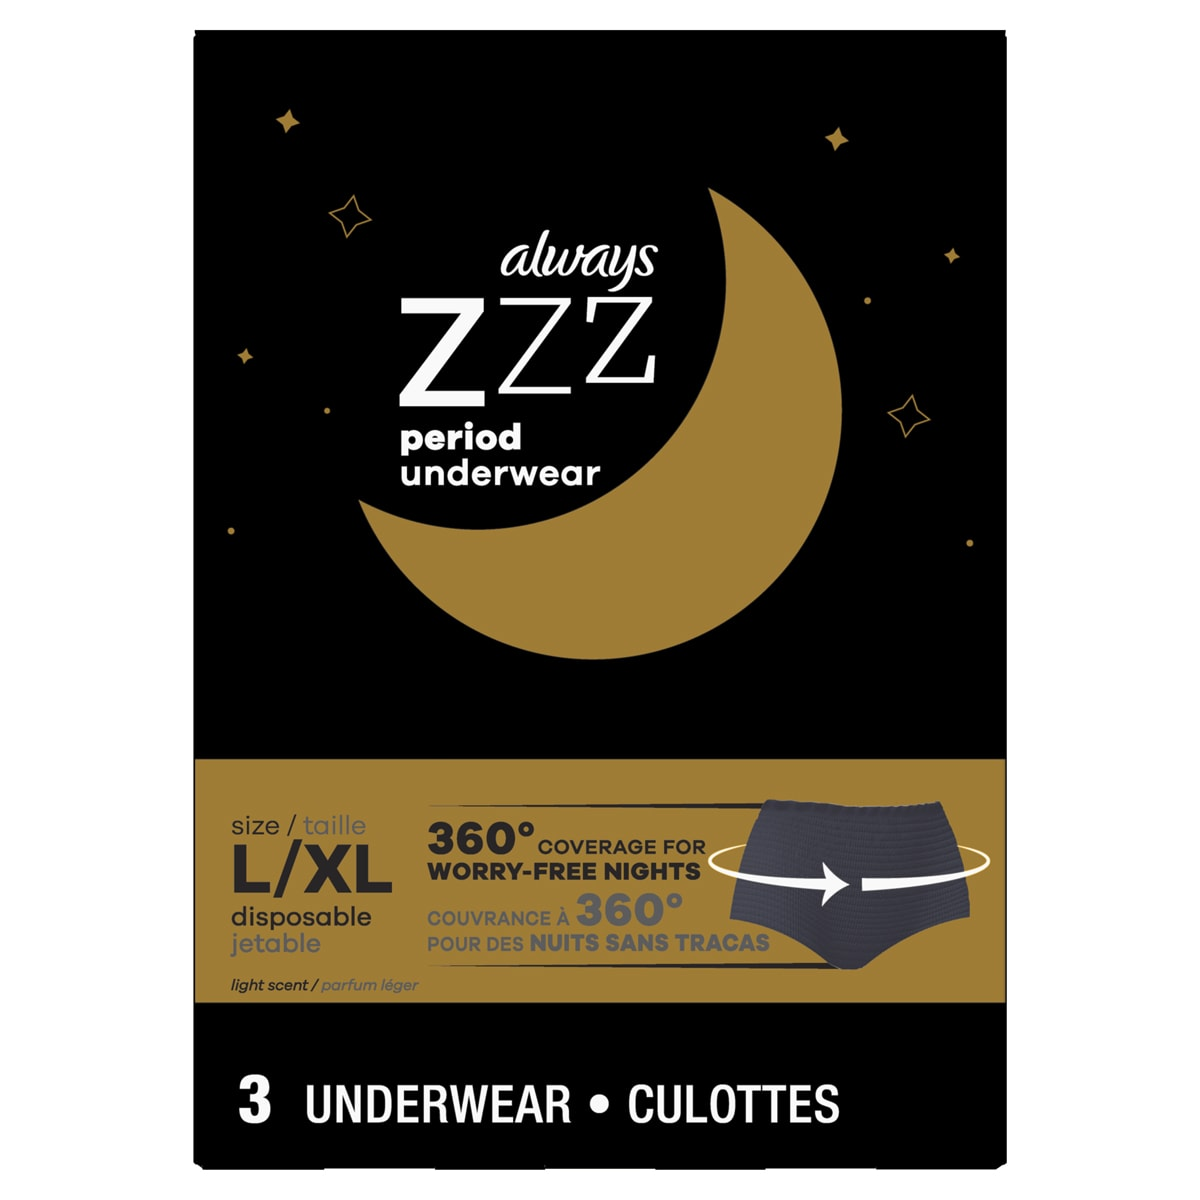 Always ZZZ Overnight Disposable Period Underwear for Women Size L 360 Coverage